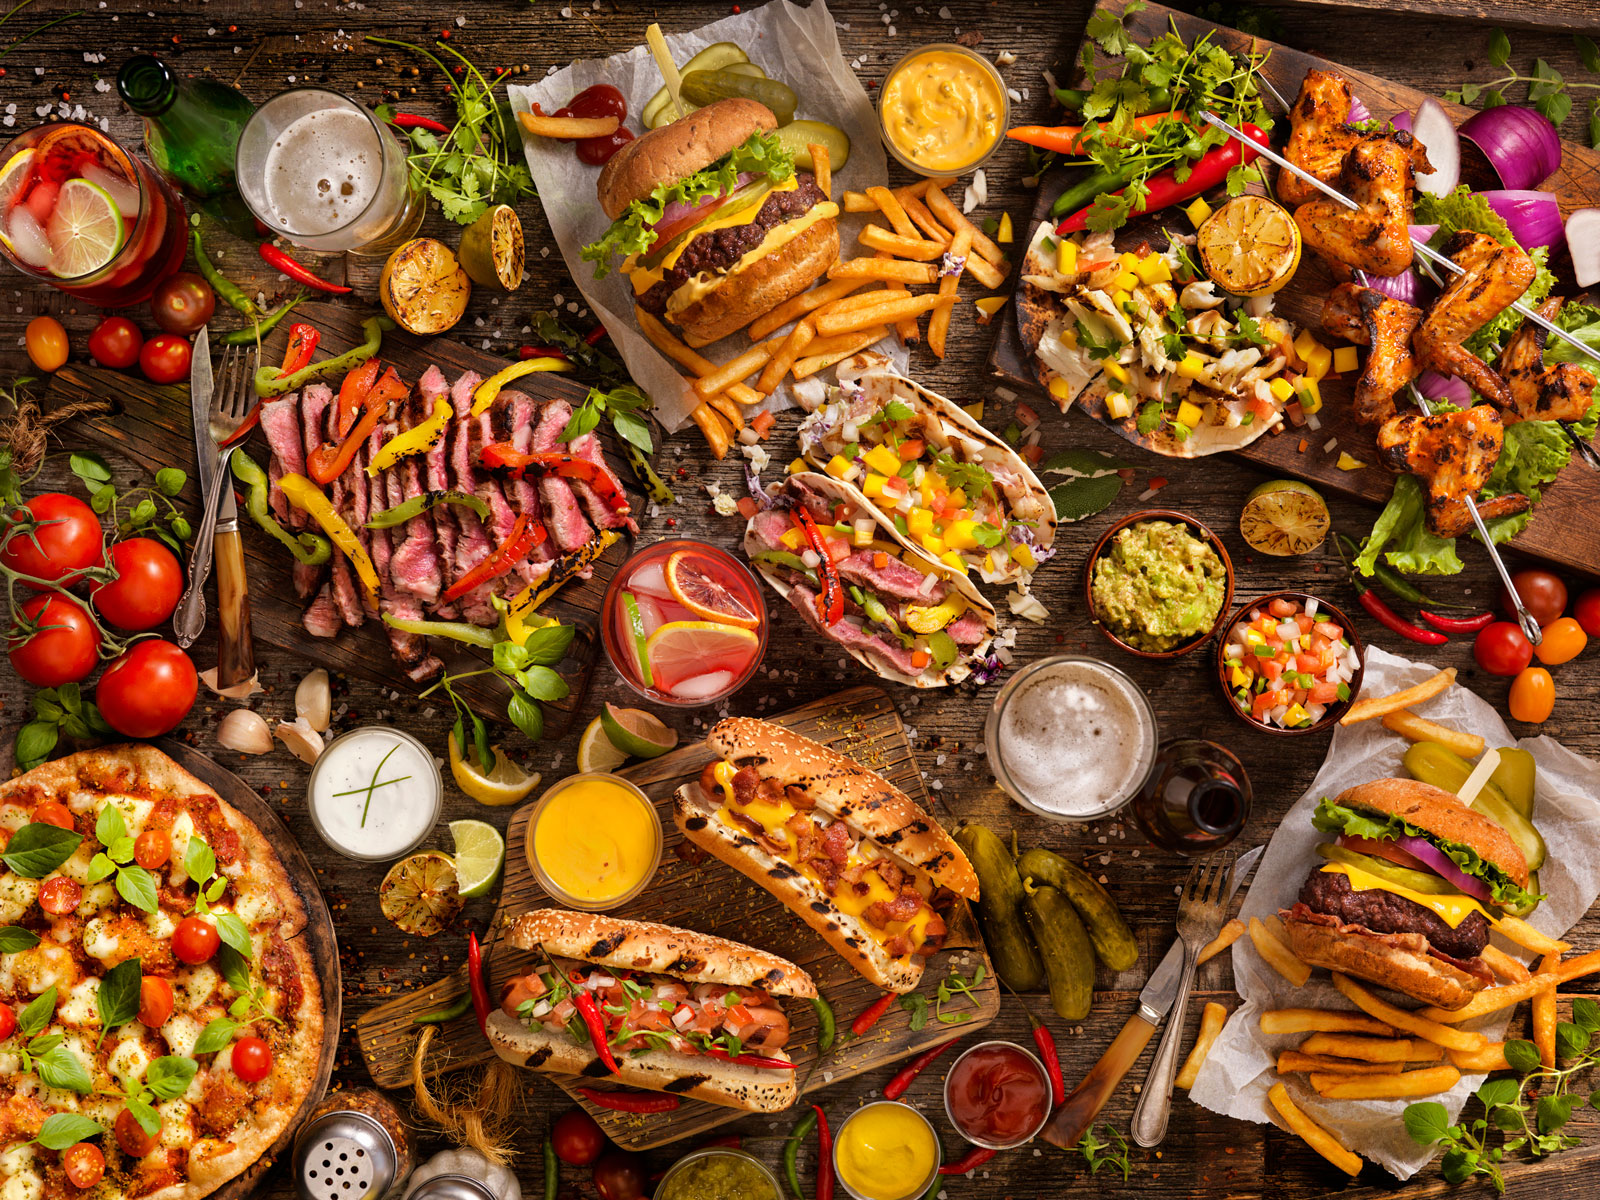 The Most Popular Food & Drink Holiday in Every State